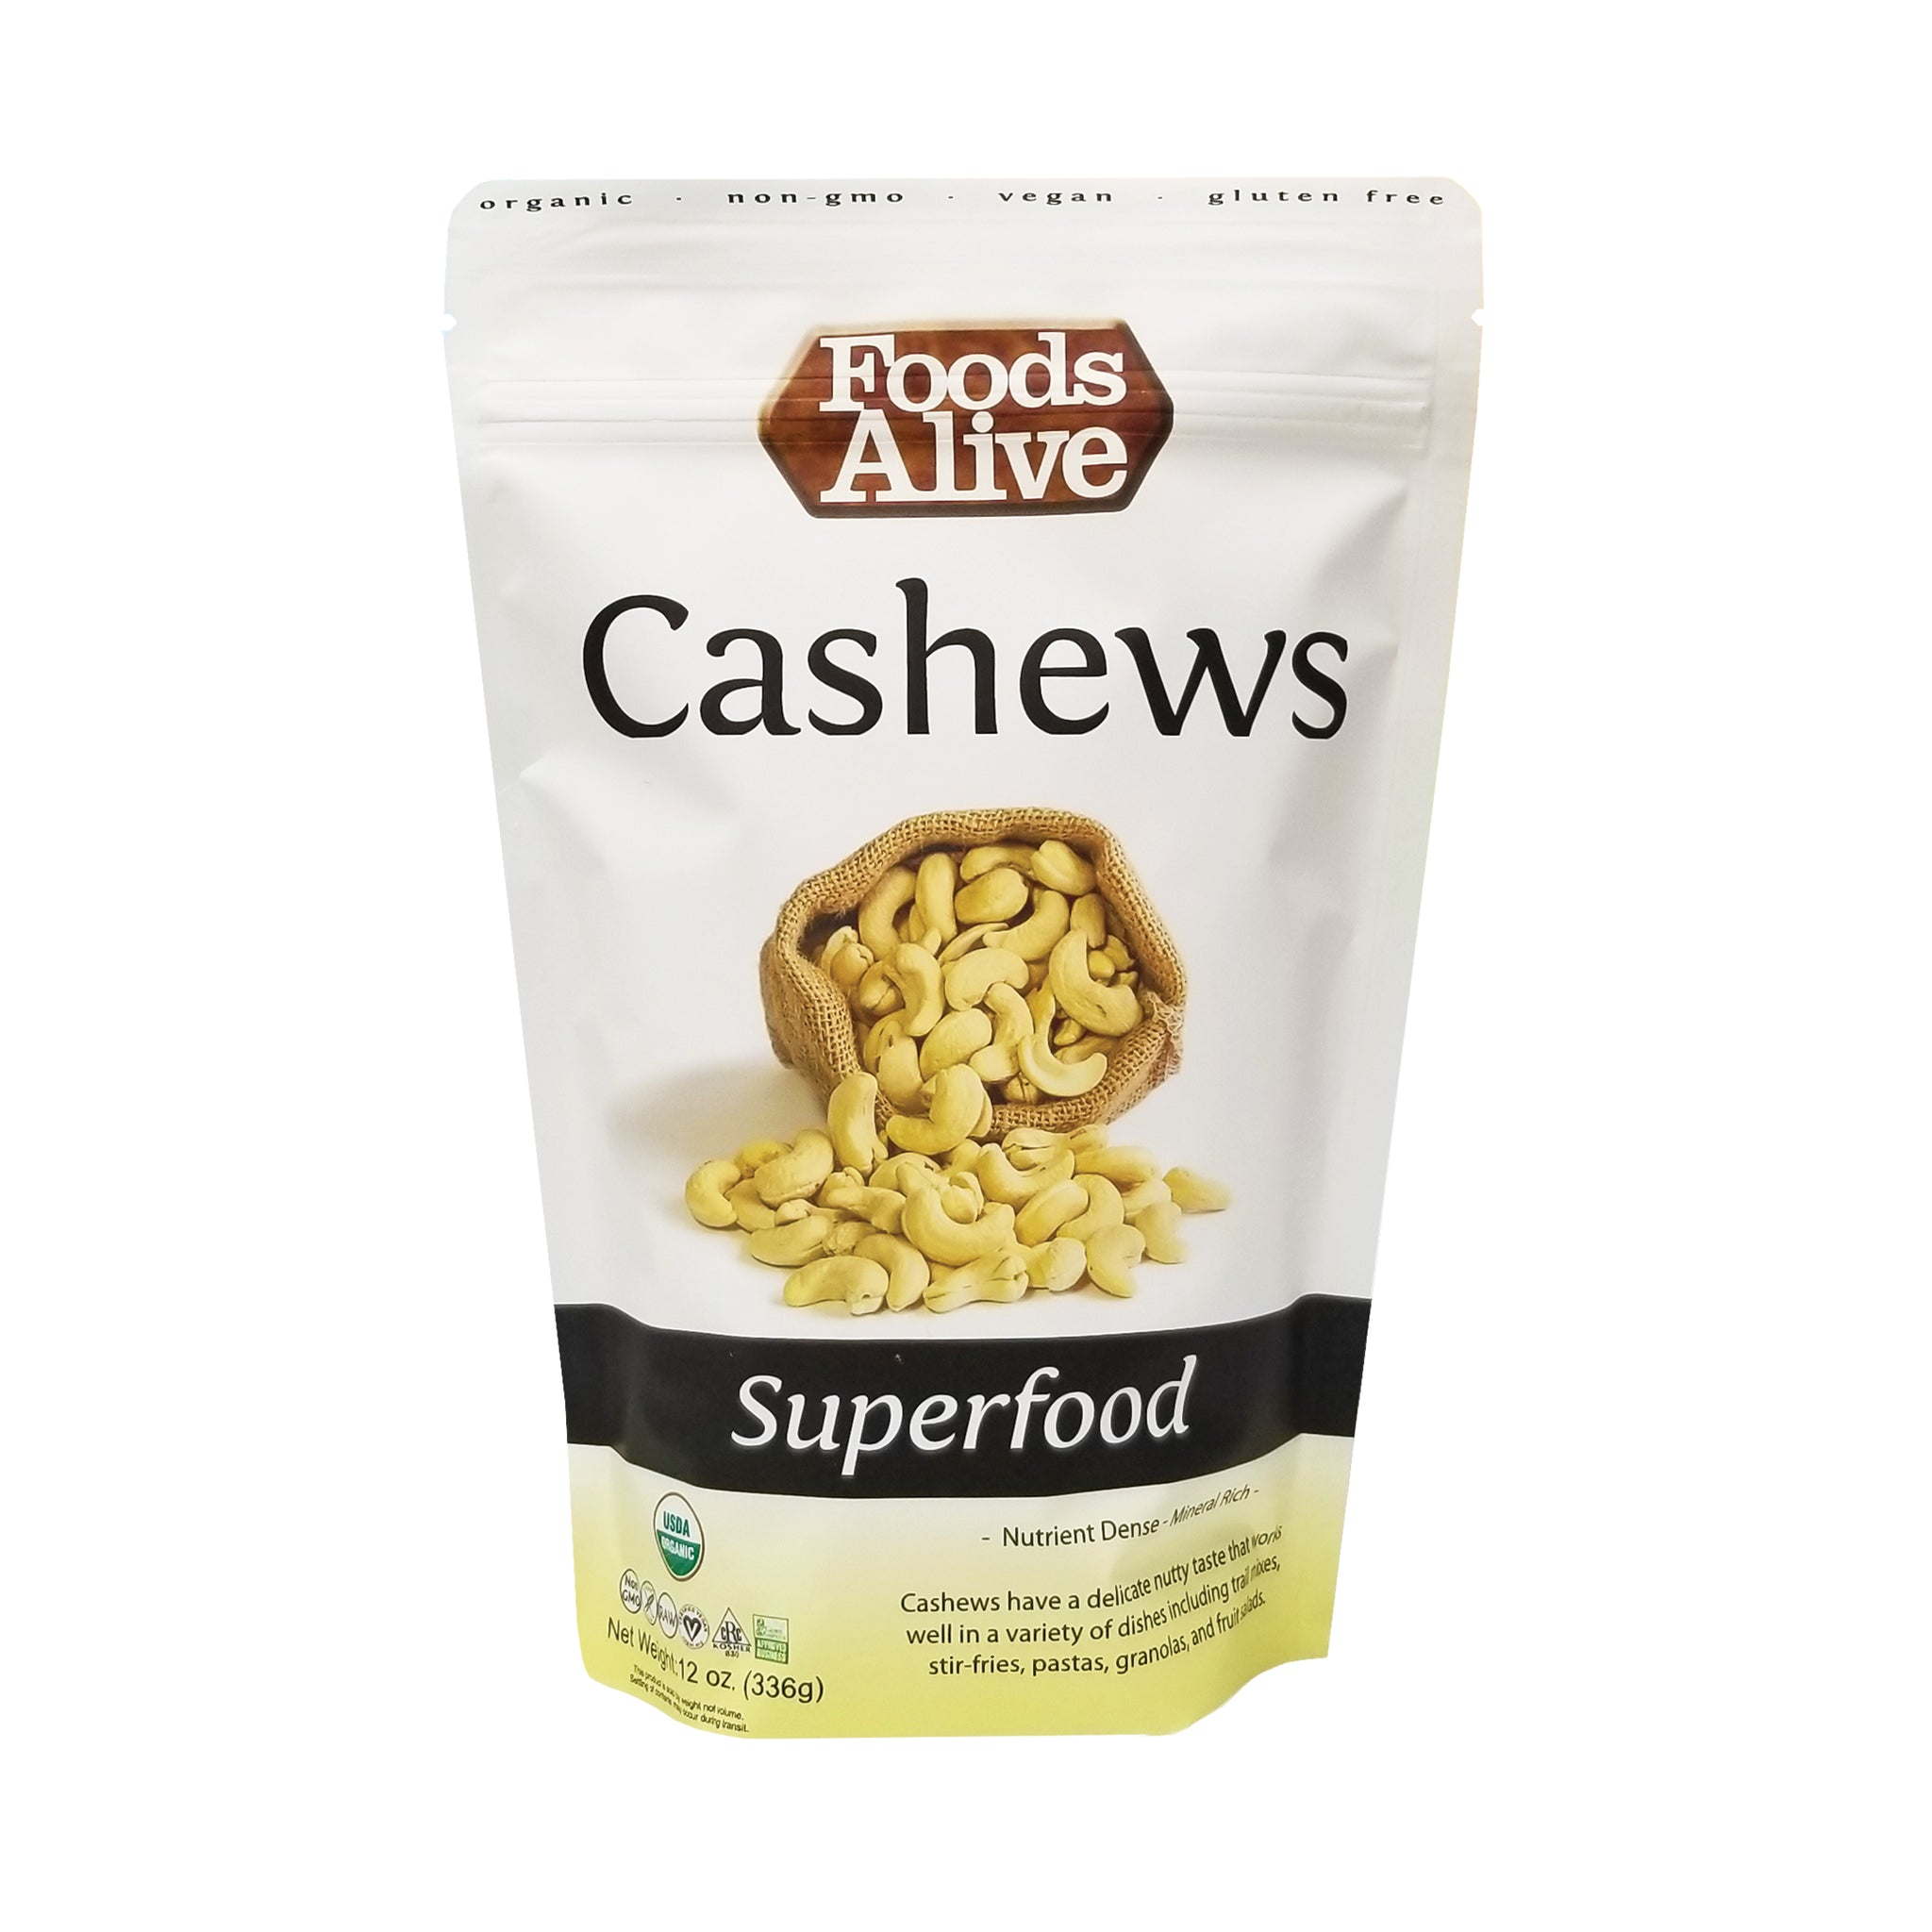 Organic Raw Cashews - 12oz - Front - Foods Alive